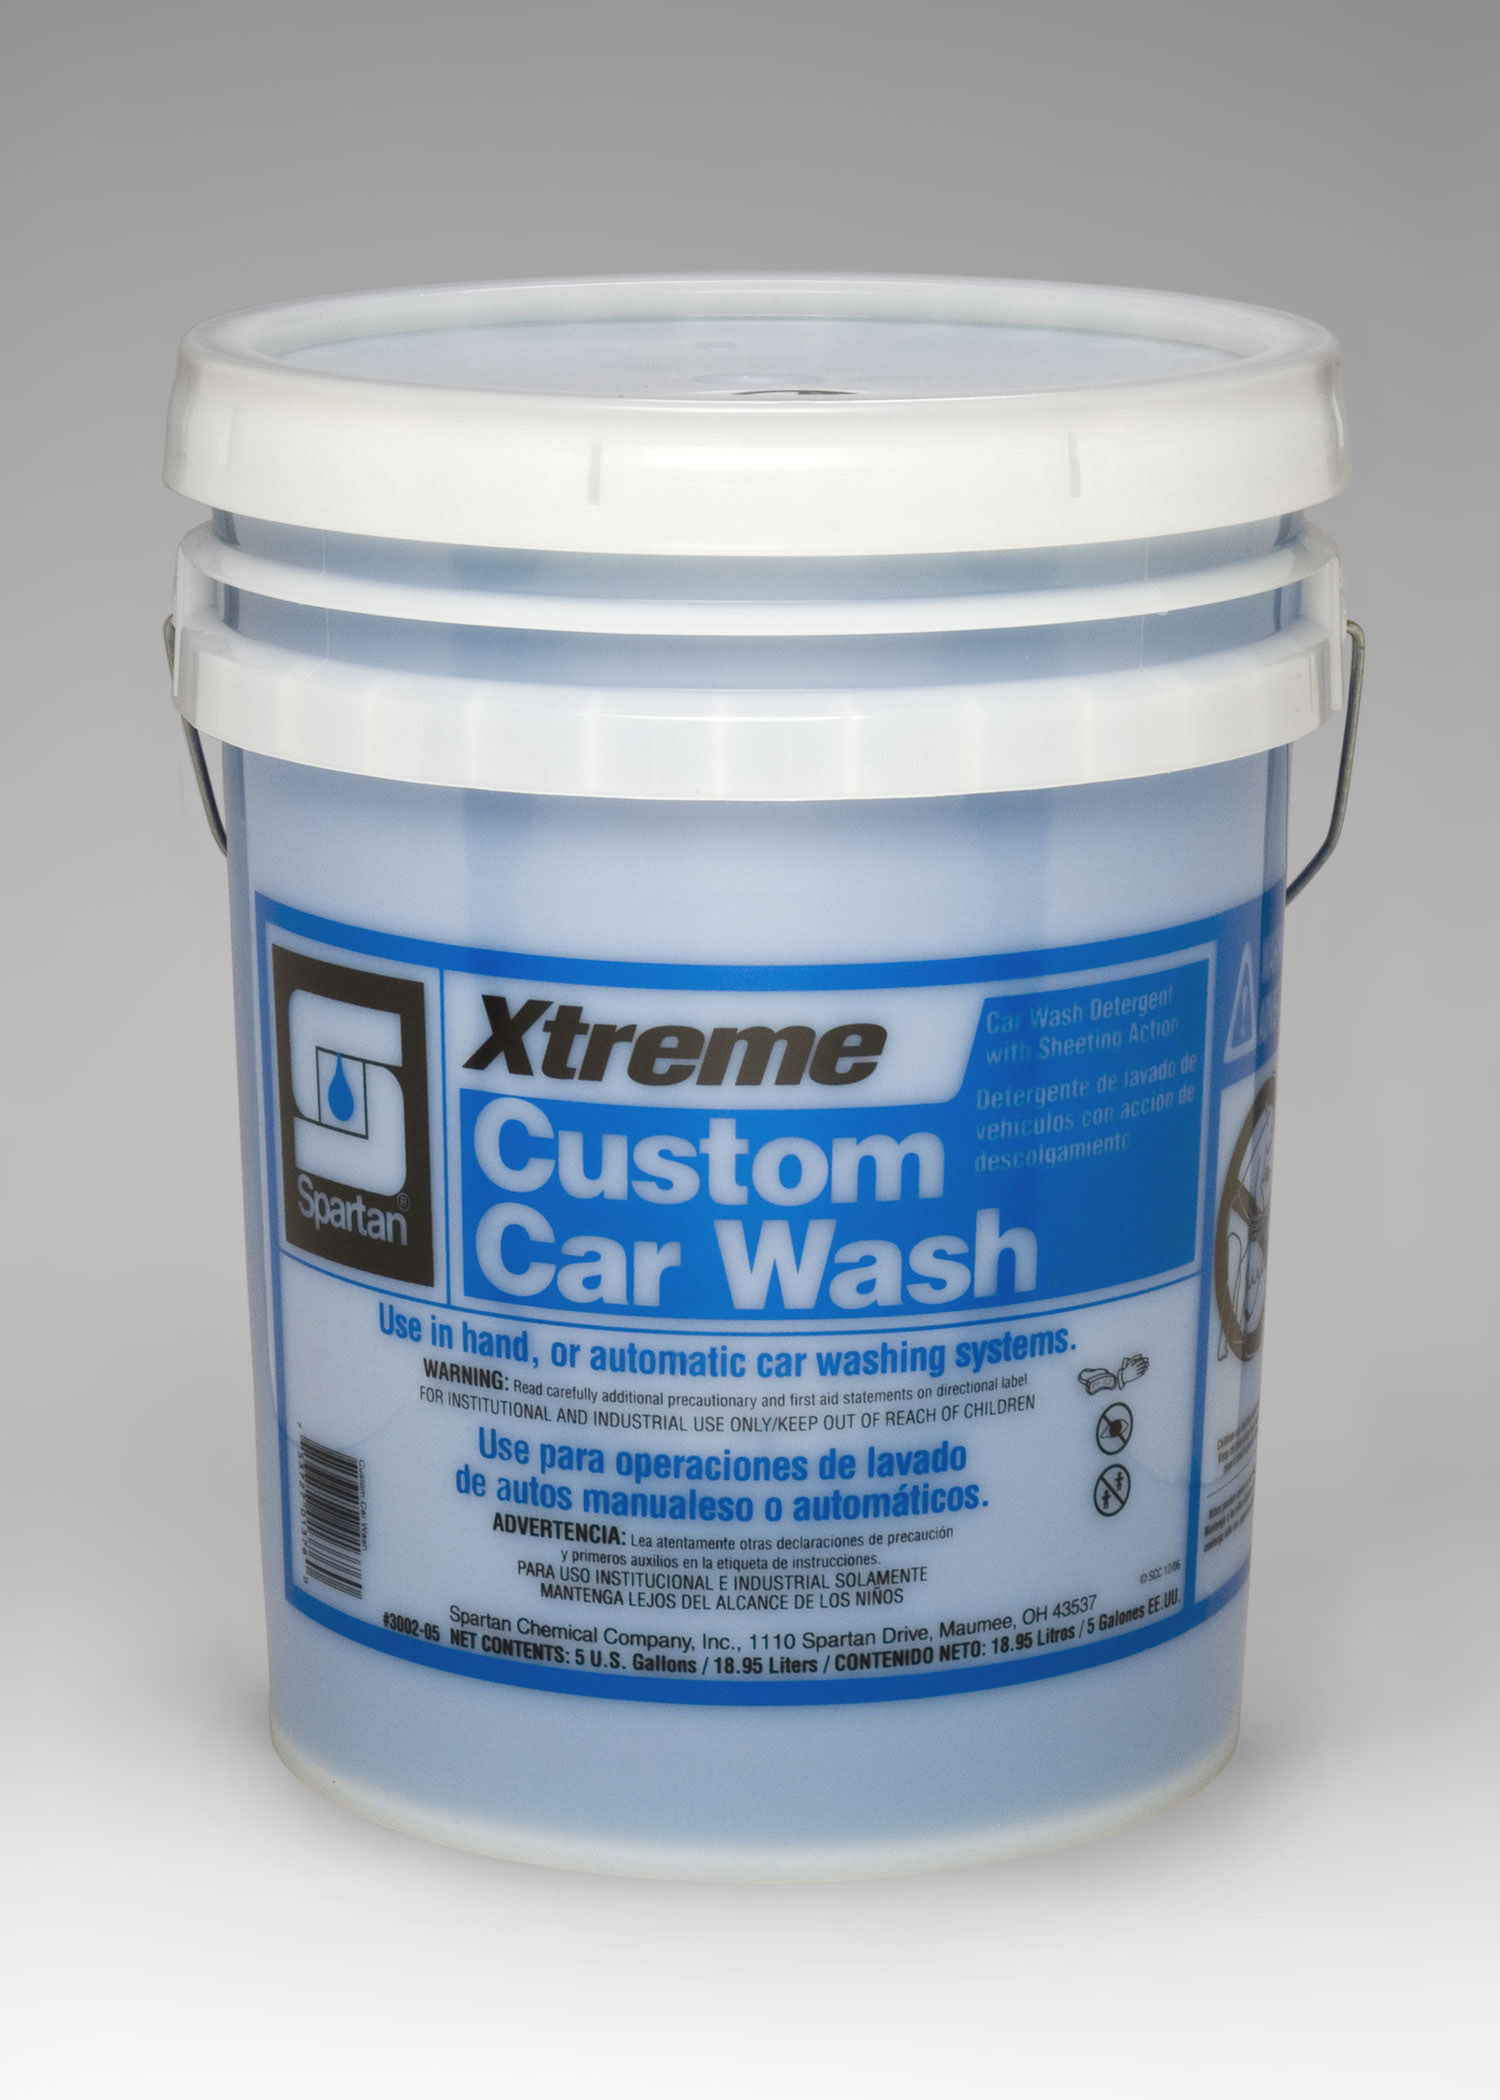 Spartan Xtreme custom car wash concentrated cleaner